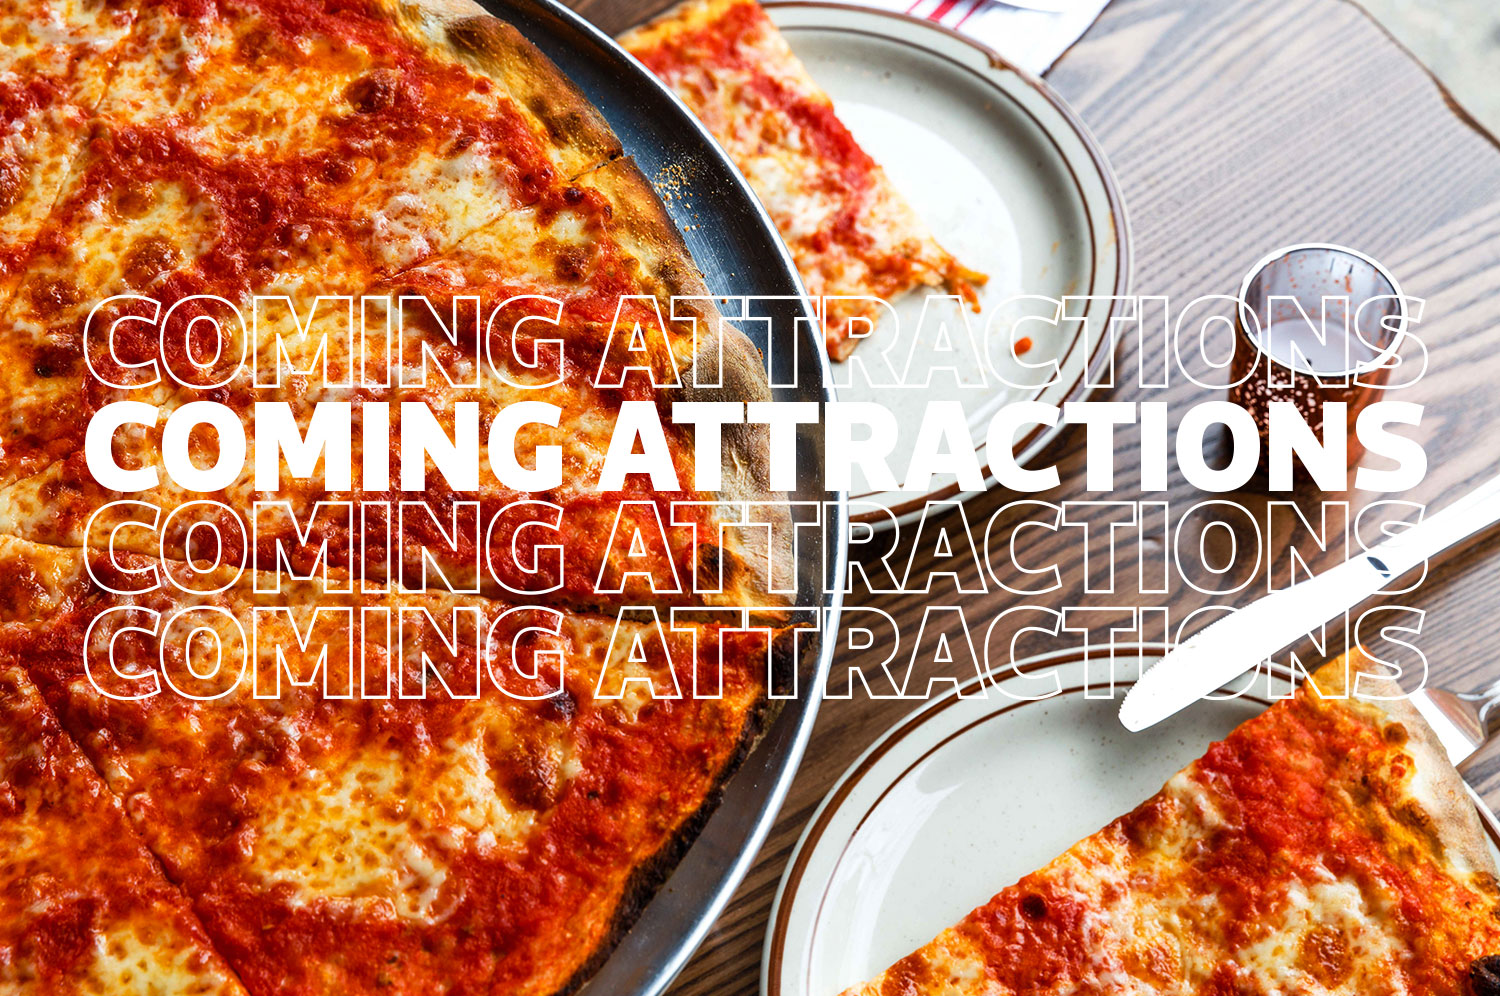 """A thin-crust cheese pizza on a metal tray surrounded by two plates with slices and silverware. """"Coming Attractions"""" is written across the top of the image."""